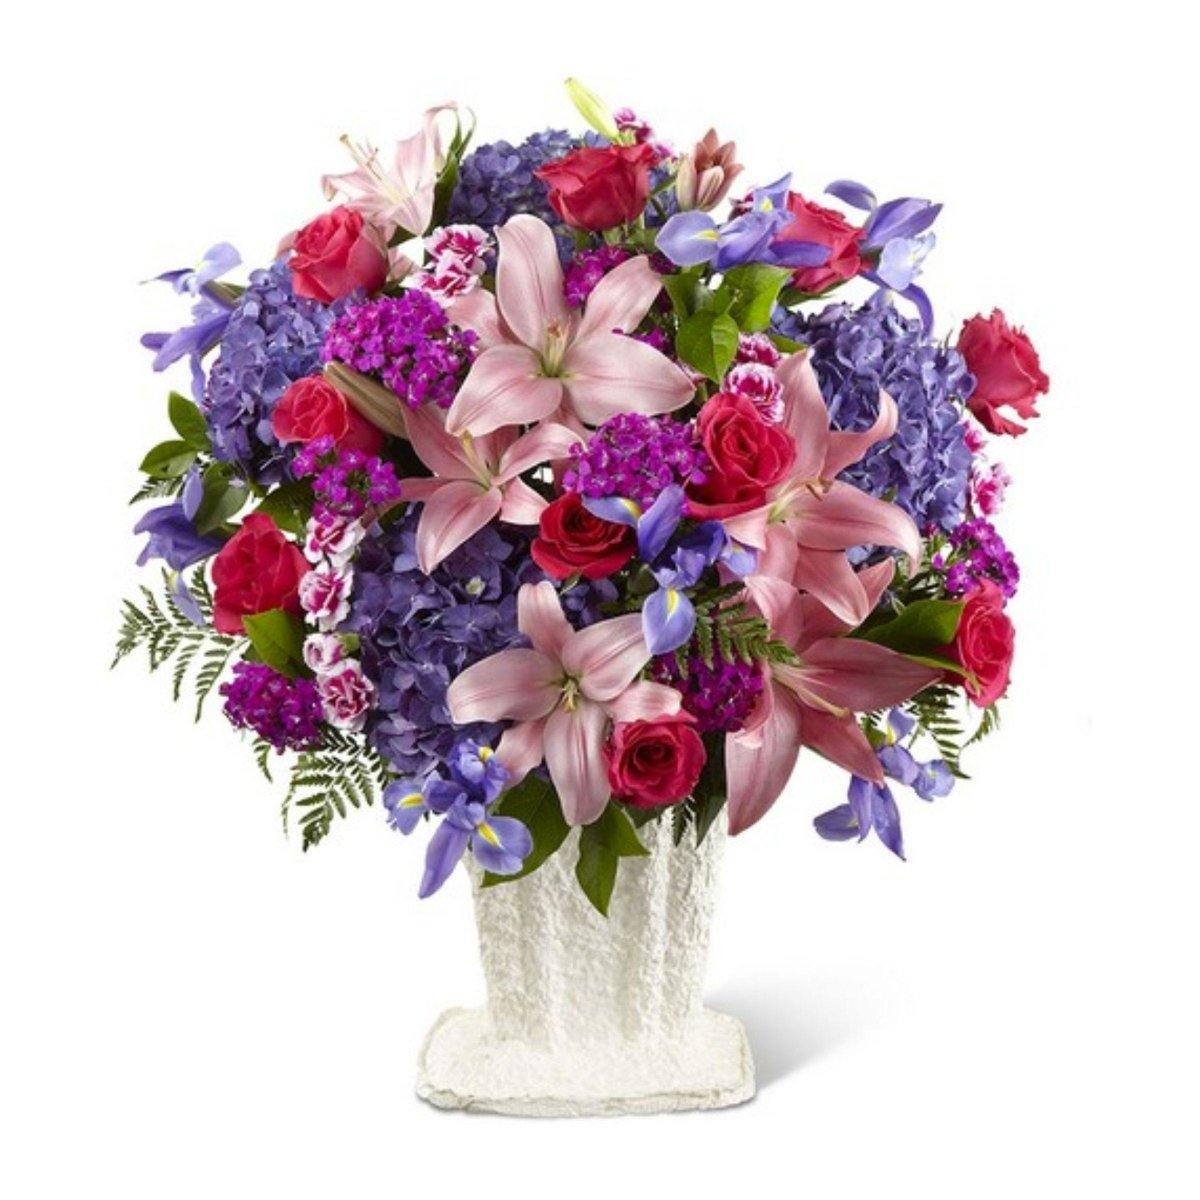 The FTD® We Fondly Remember Arrangement